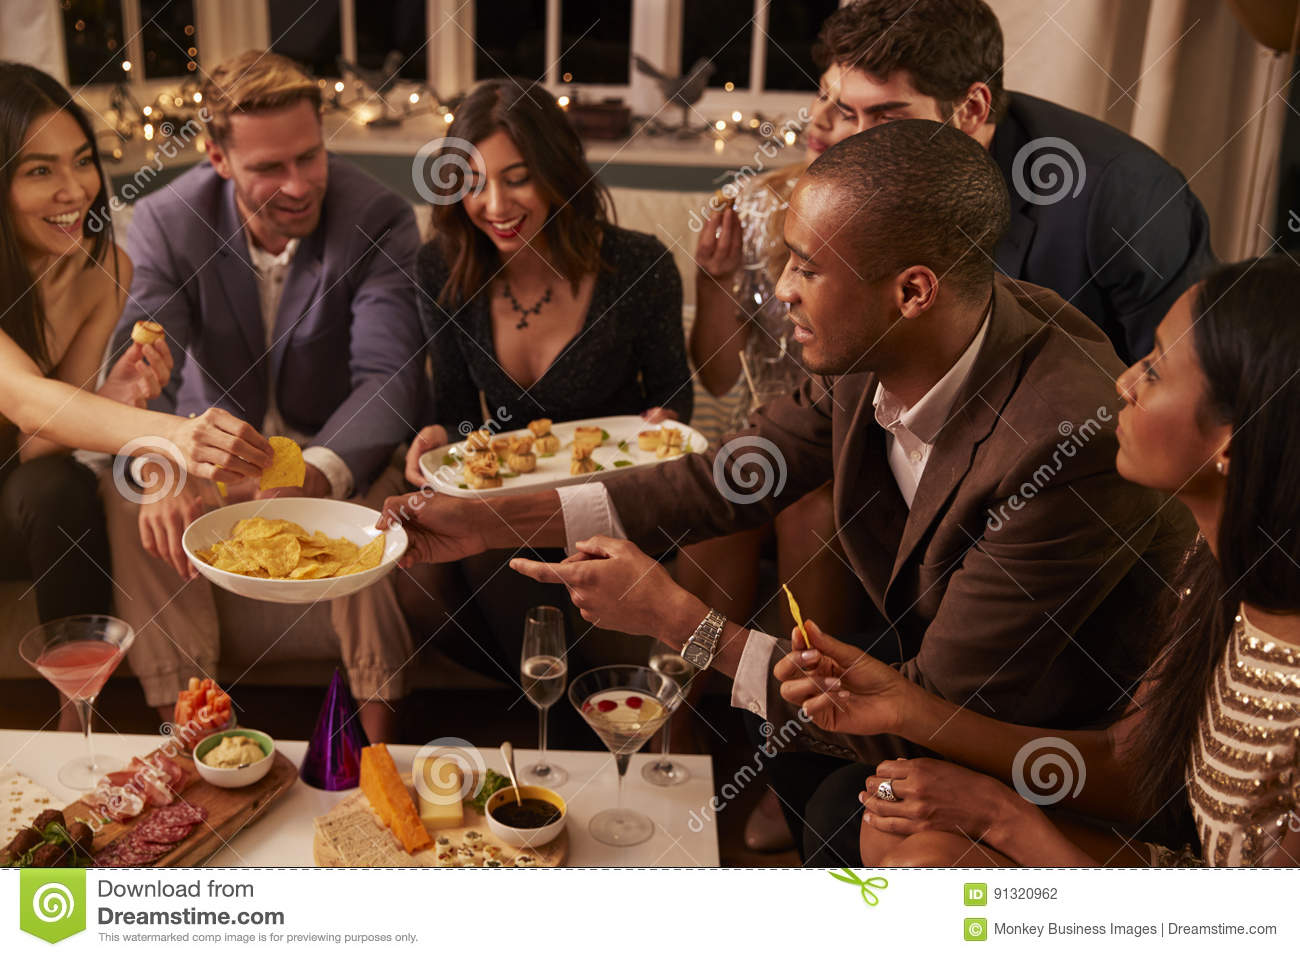 Group Of Friends Enjoying Drinks And Snacks At Party